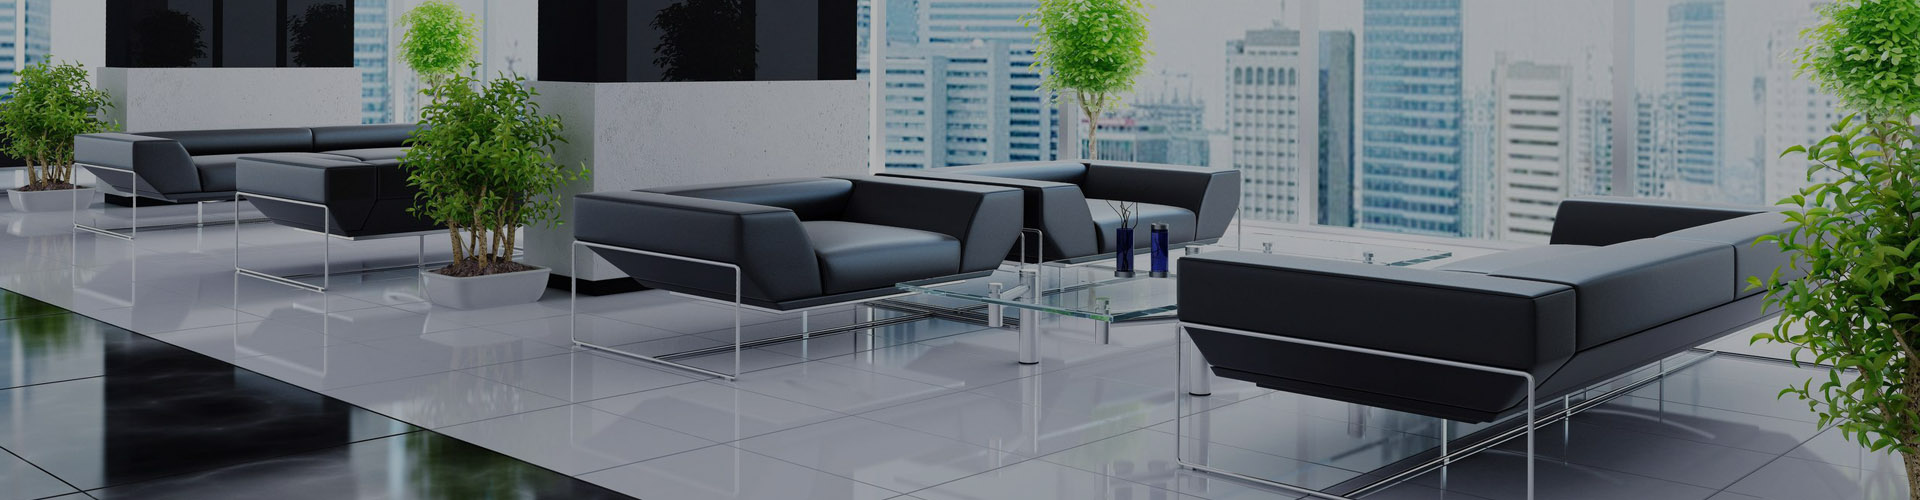 Corporate Cleaning Port Elizabeth